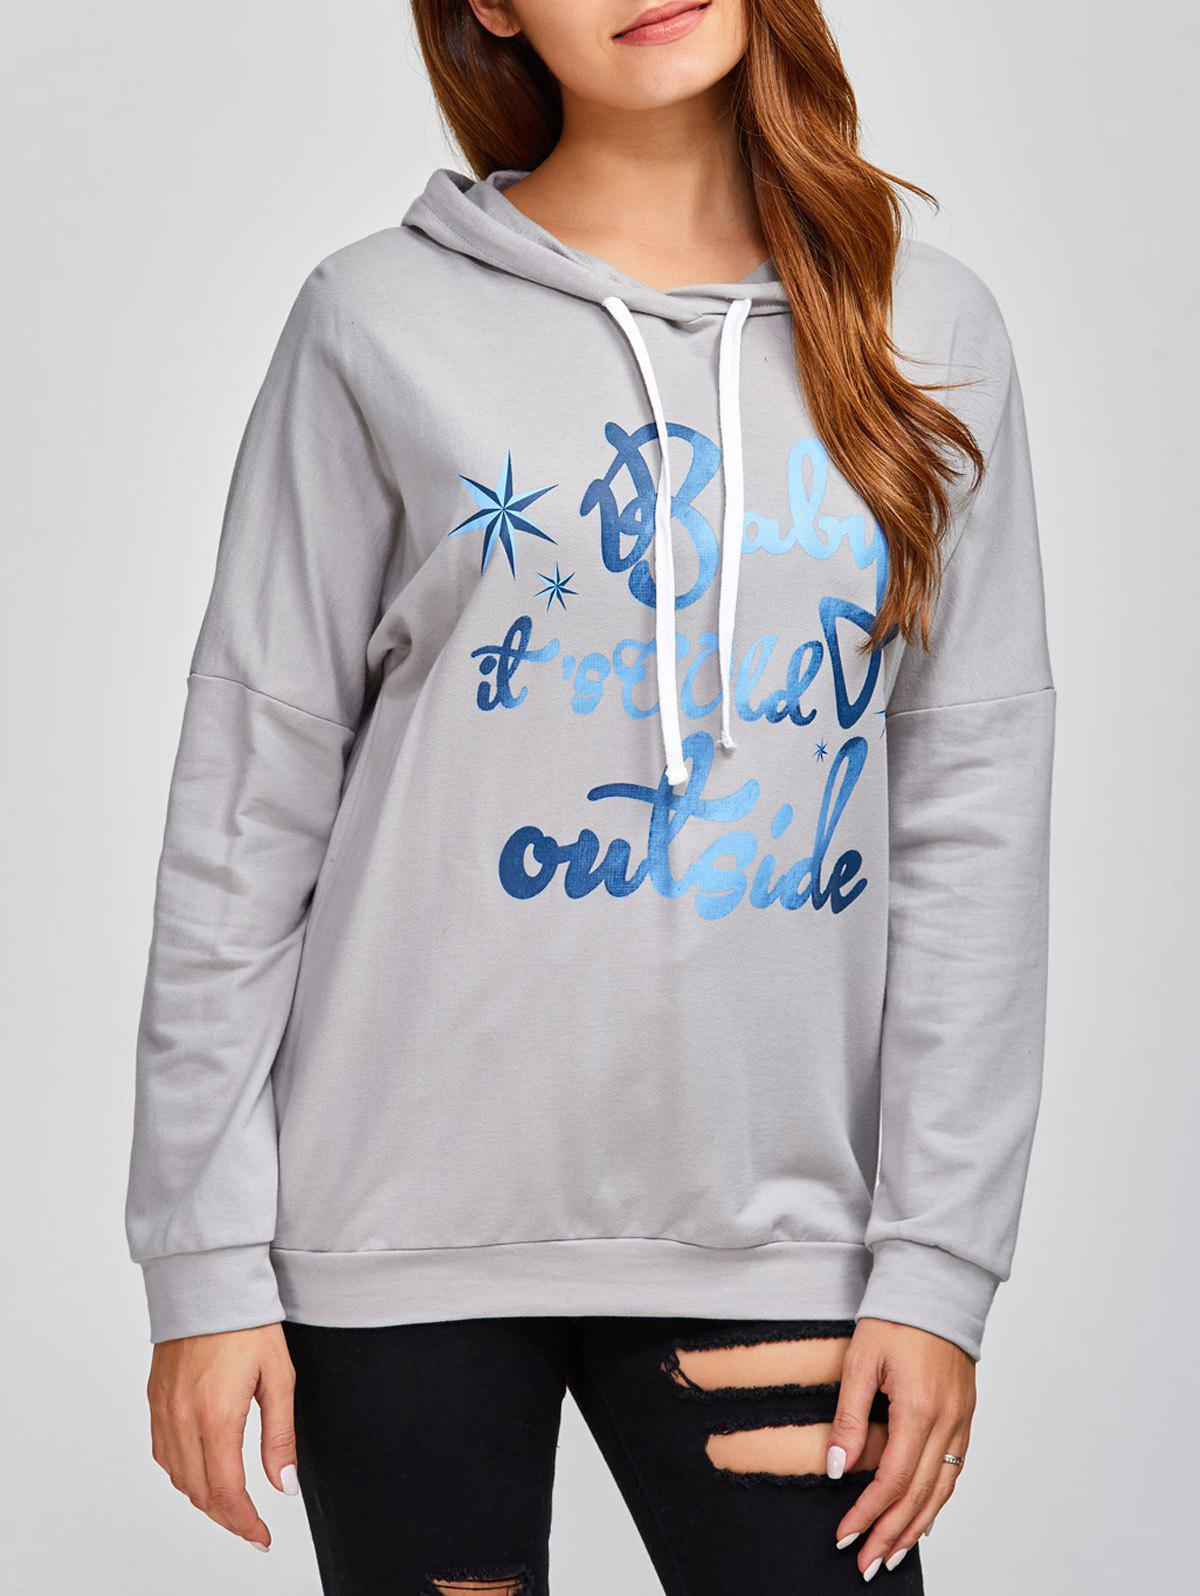 Drop Shoulder Letter Print Hoodie - GRAY M